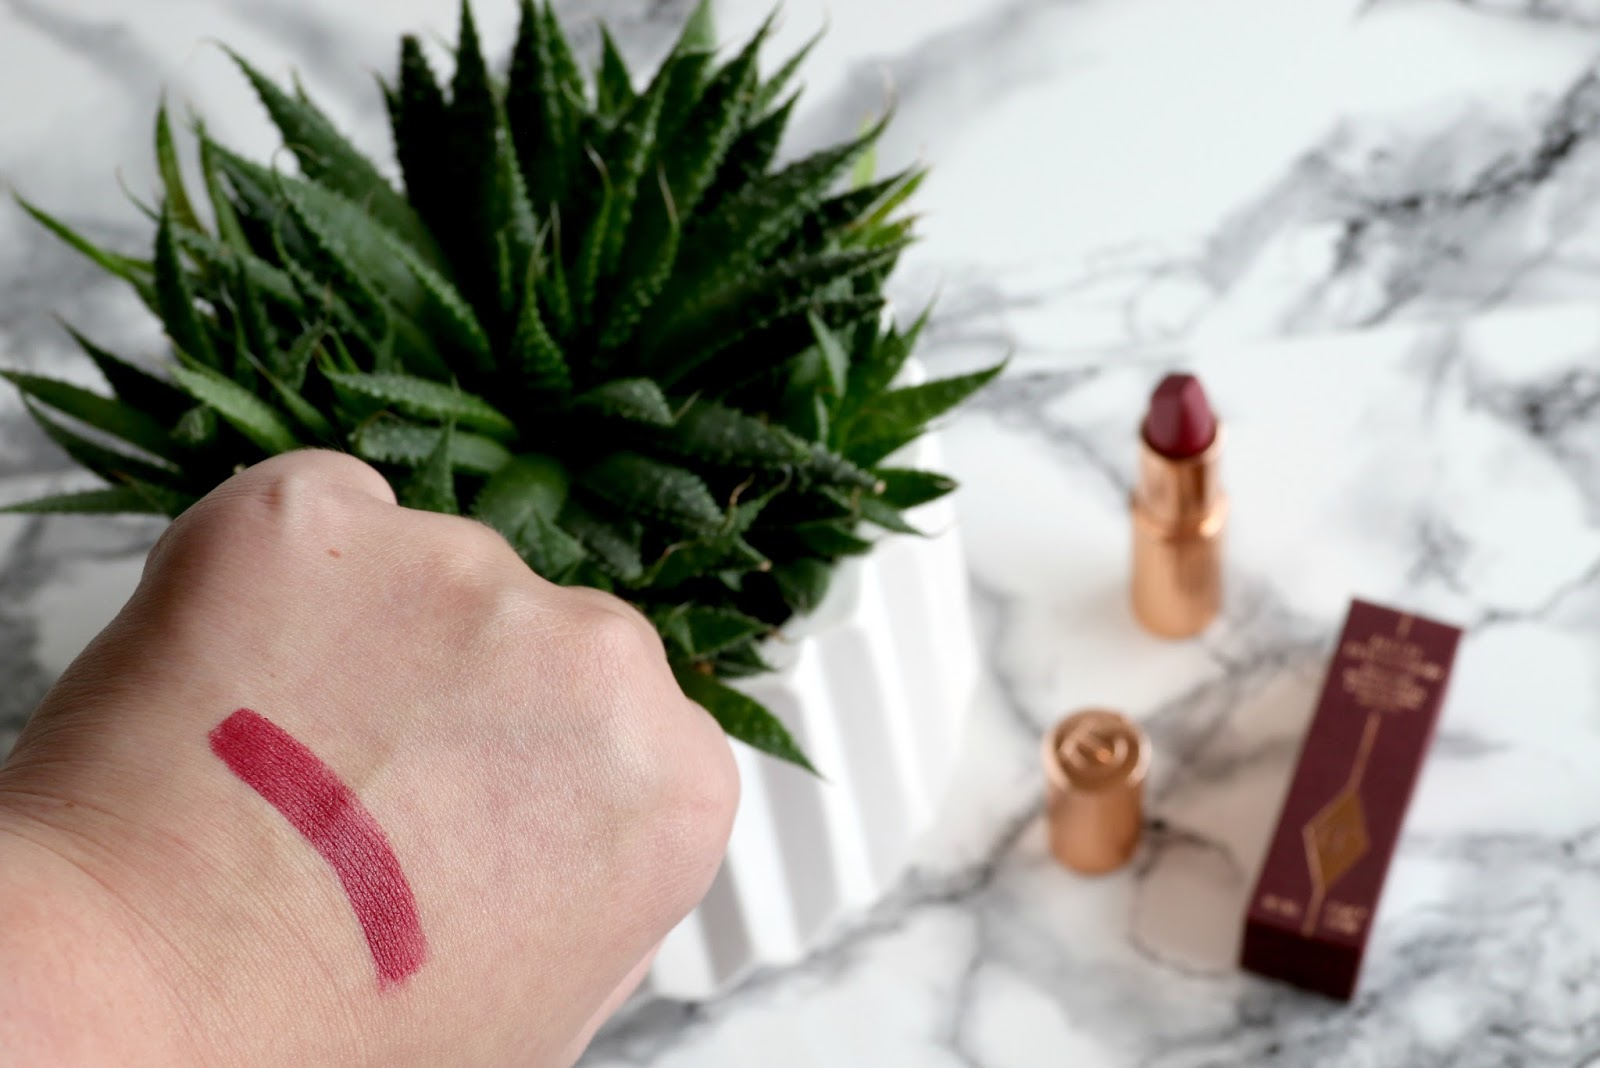 Charlotte Tilbury Lipstick in Love Liberty Review